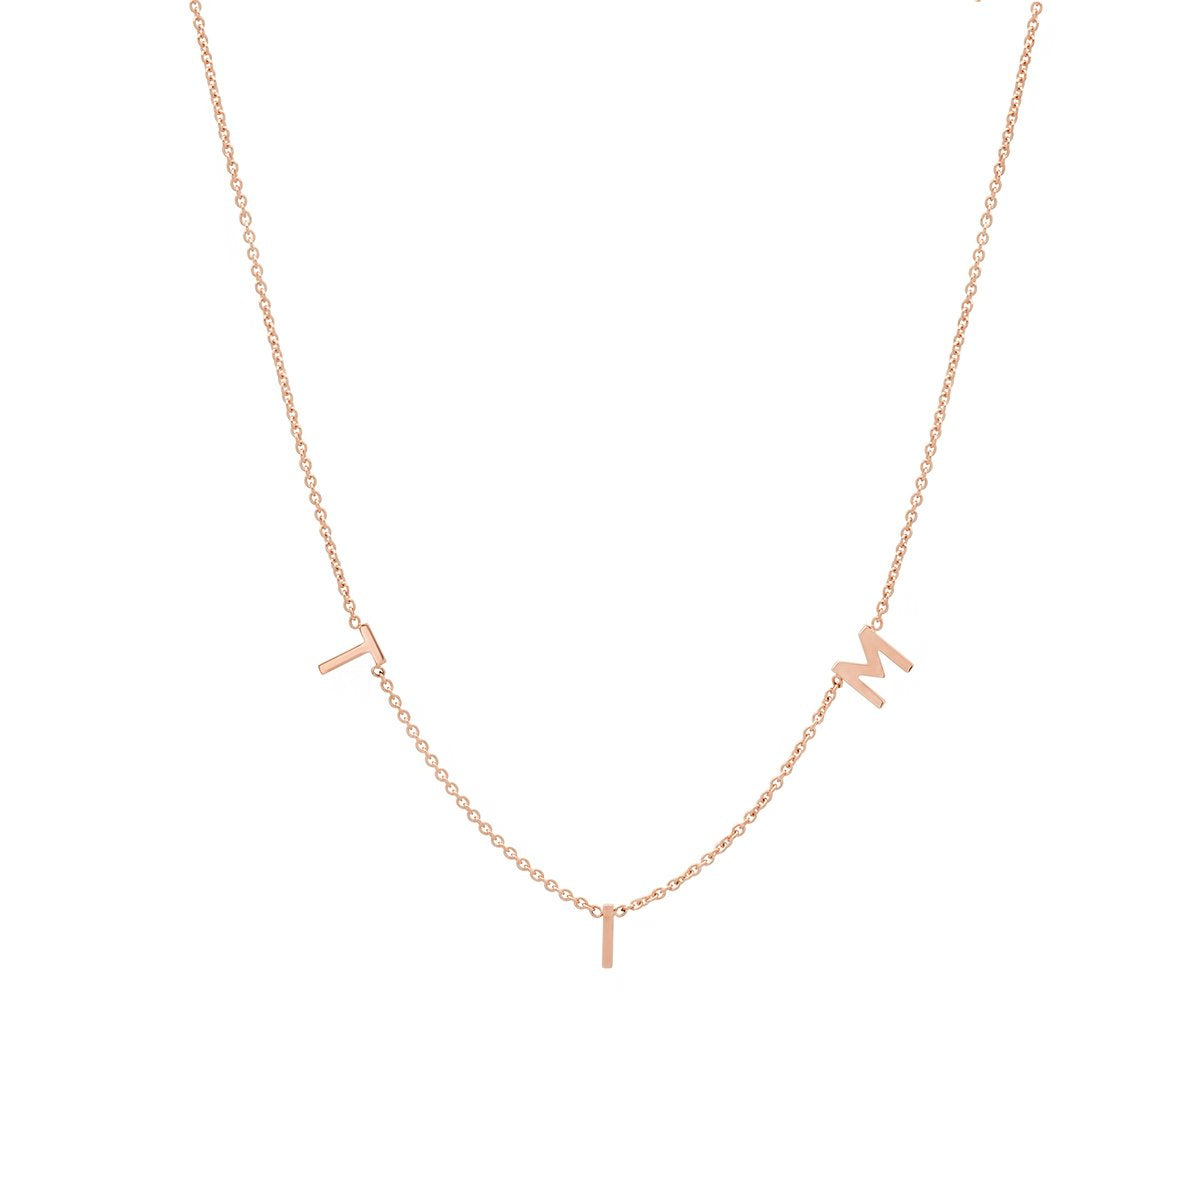 THE ORIGINAL SPACED LETTER NECKLACE - Small®